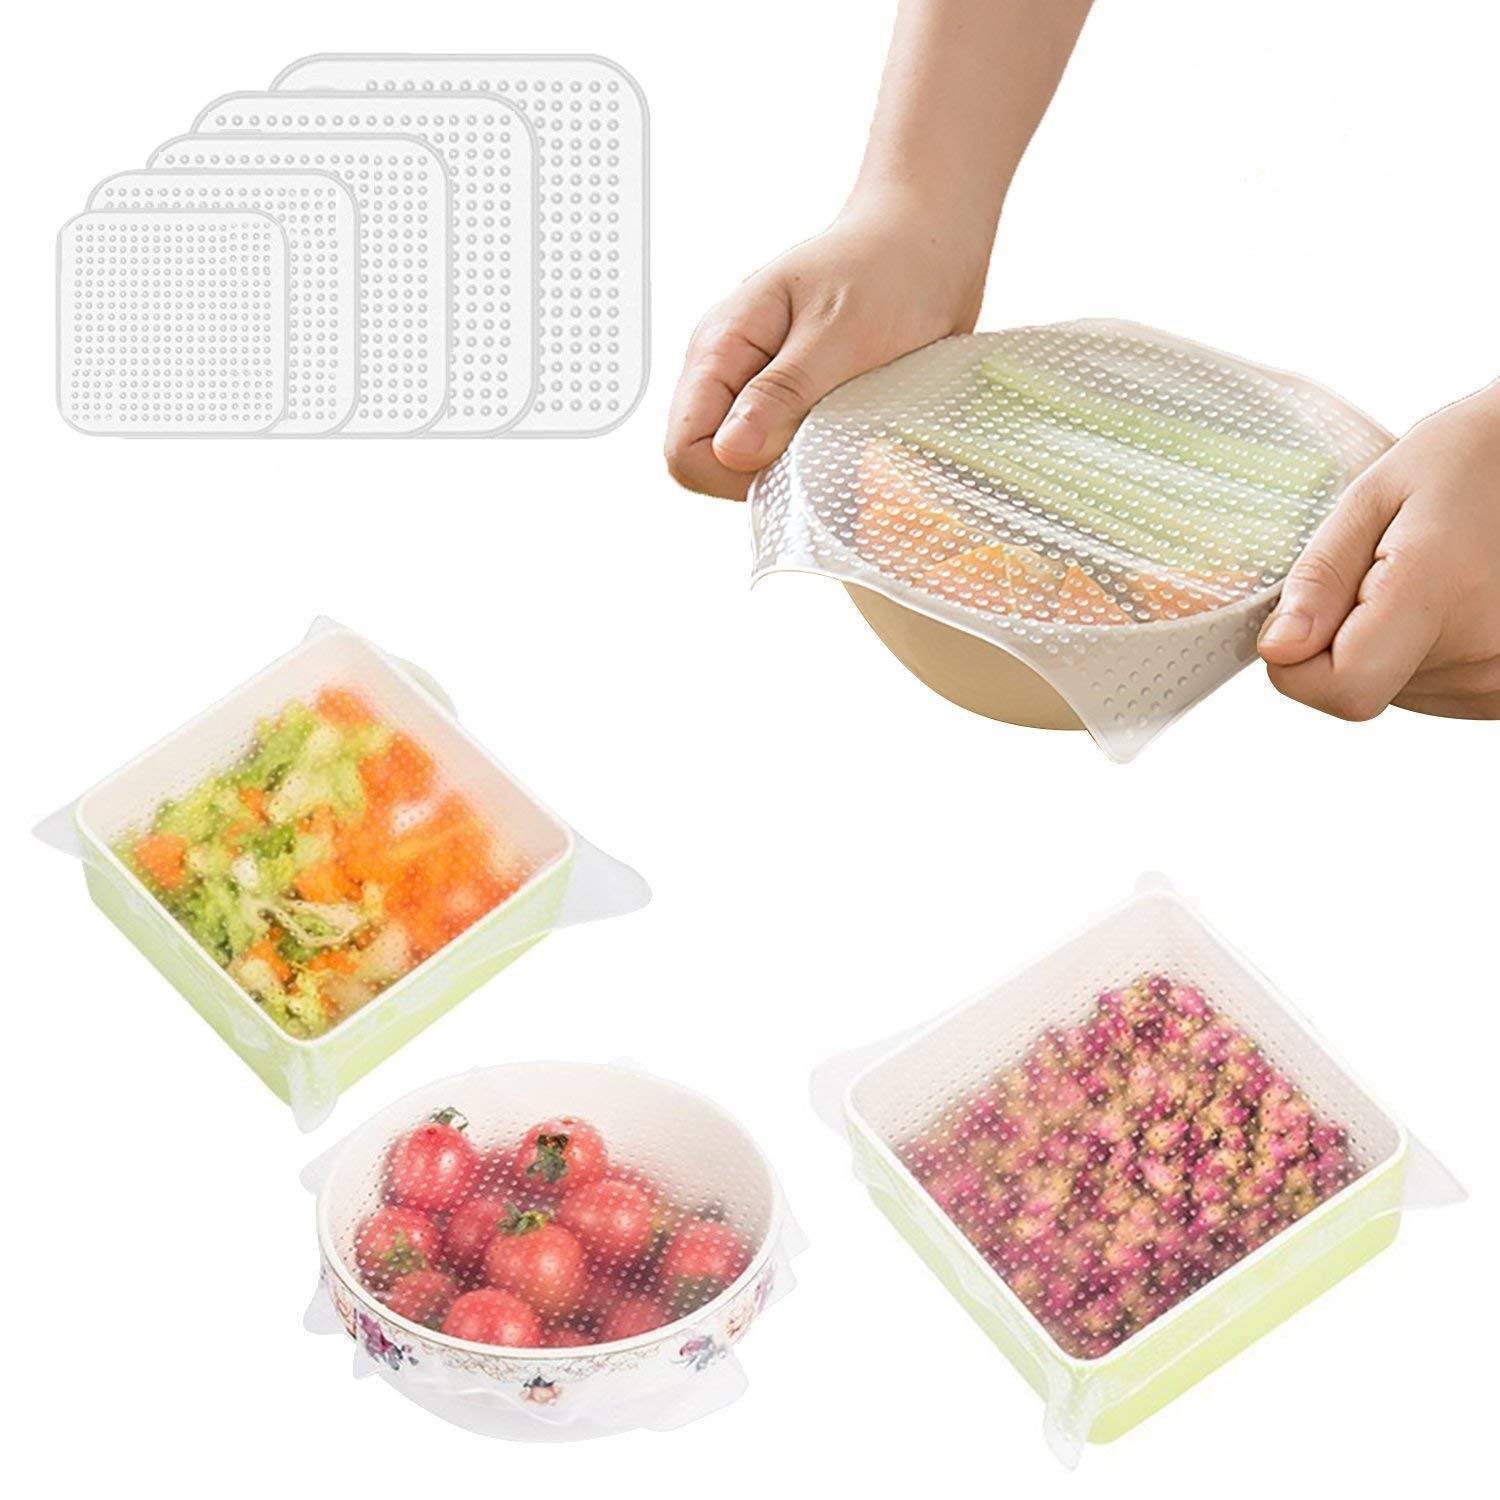 JRing 5pcs Silicone Bowl Covers, Reusable Silicone Food Saver Wraps, Silicone Stretch Lids for Bowl, Can, Jar, Glassware, Food Saver Covers Dishwasher, Microwave and Freezer Safe